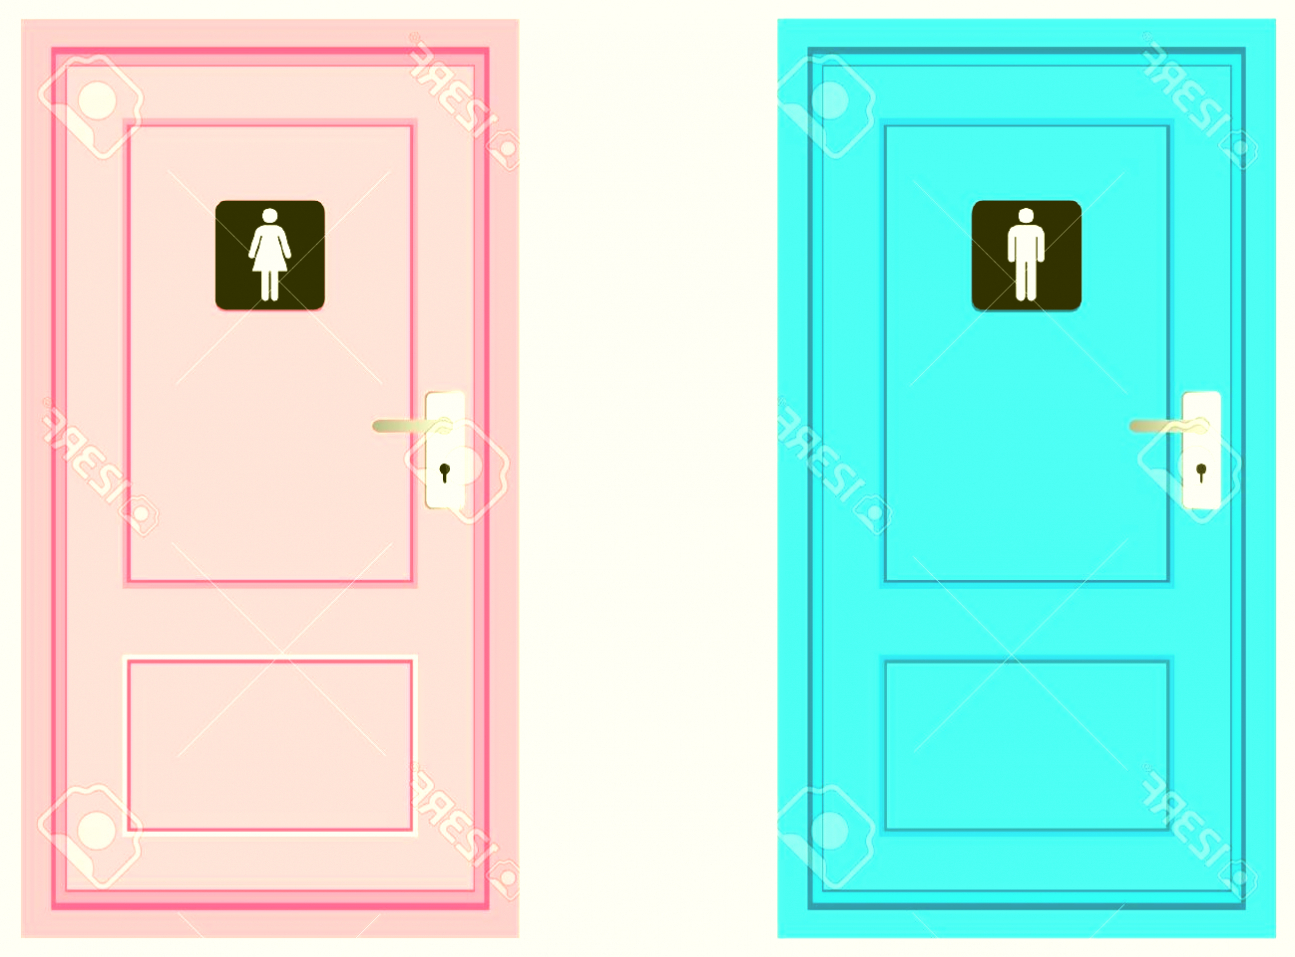 Bathroom Door Images Clipart Ideas Clip Art Mayhanrobot